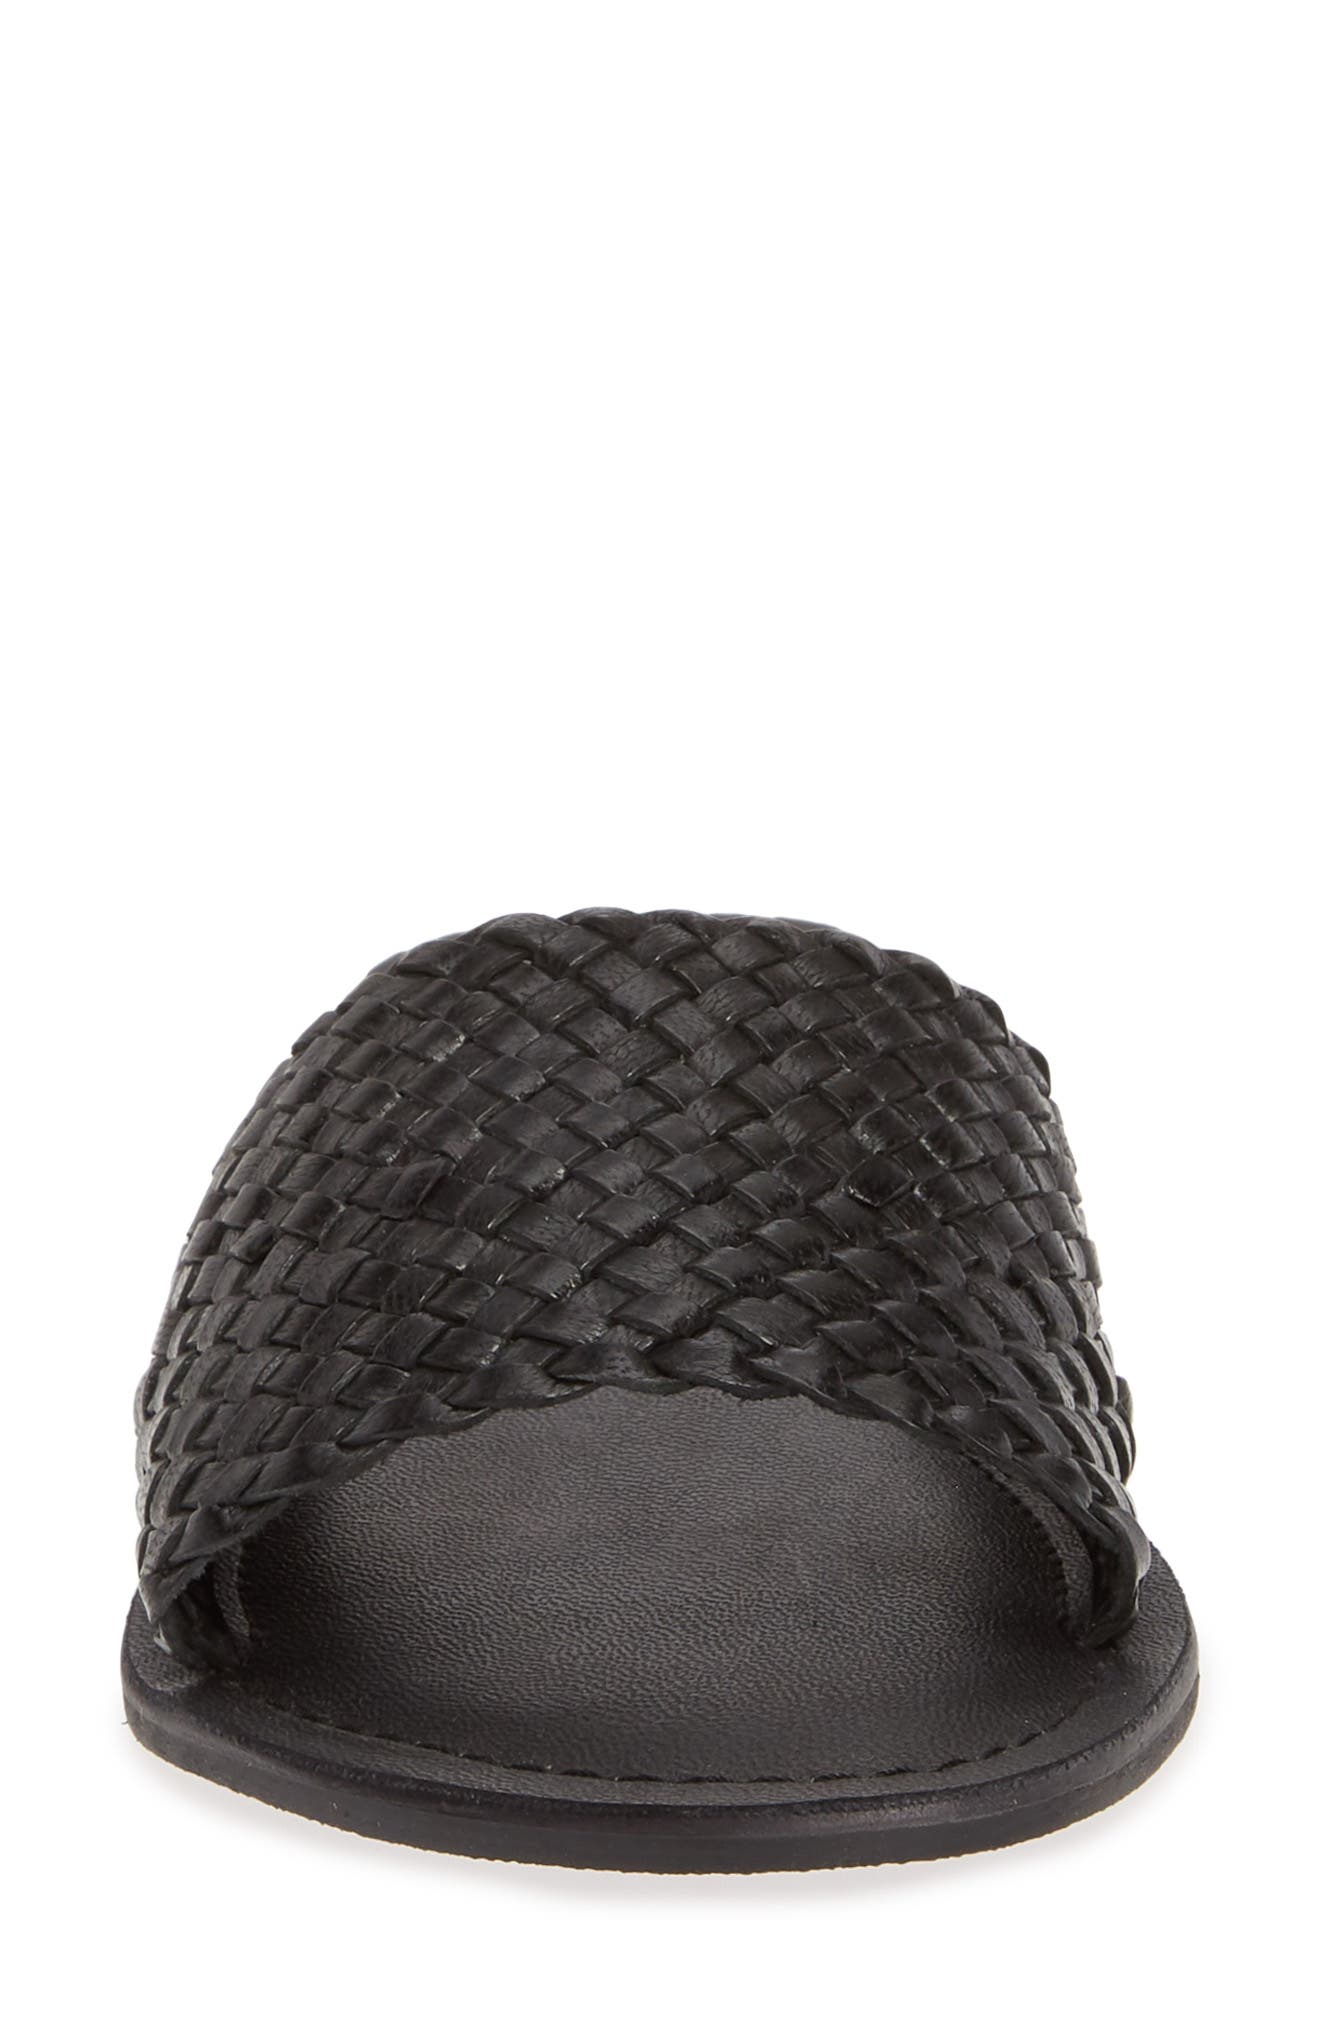 COCONUTS BY MATISSE,                             Zuma Woven Slide Sandal,                             Alternate thumbnail 4, color,                             BLACK LEATHER